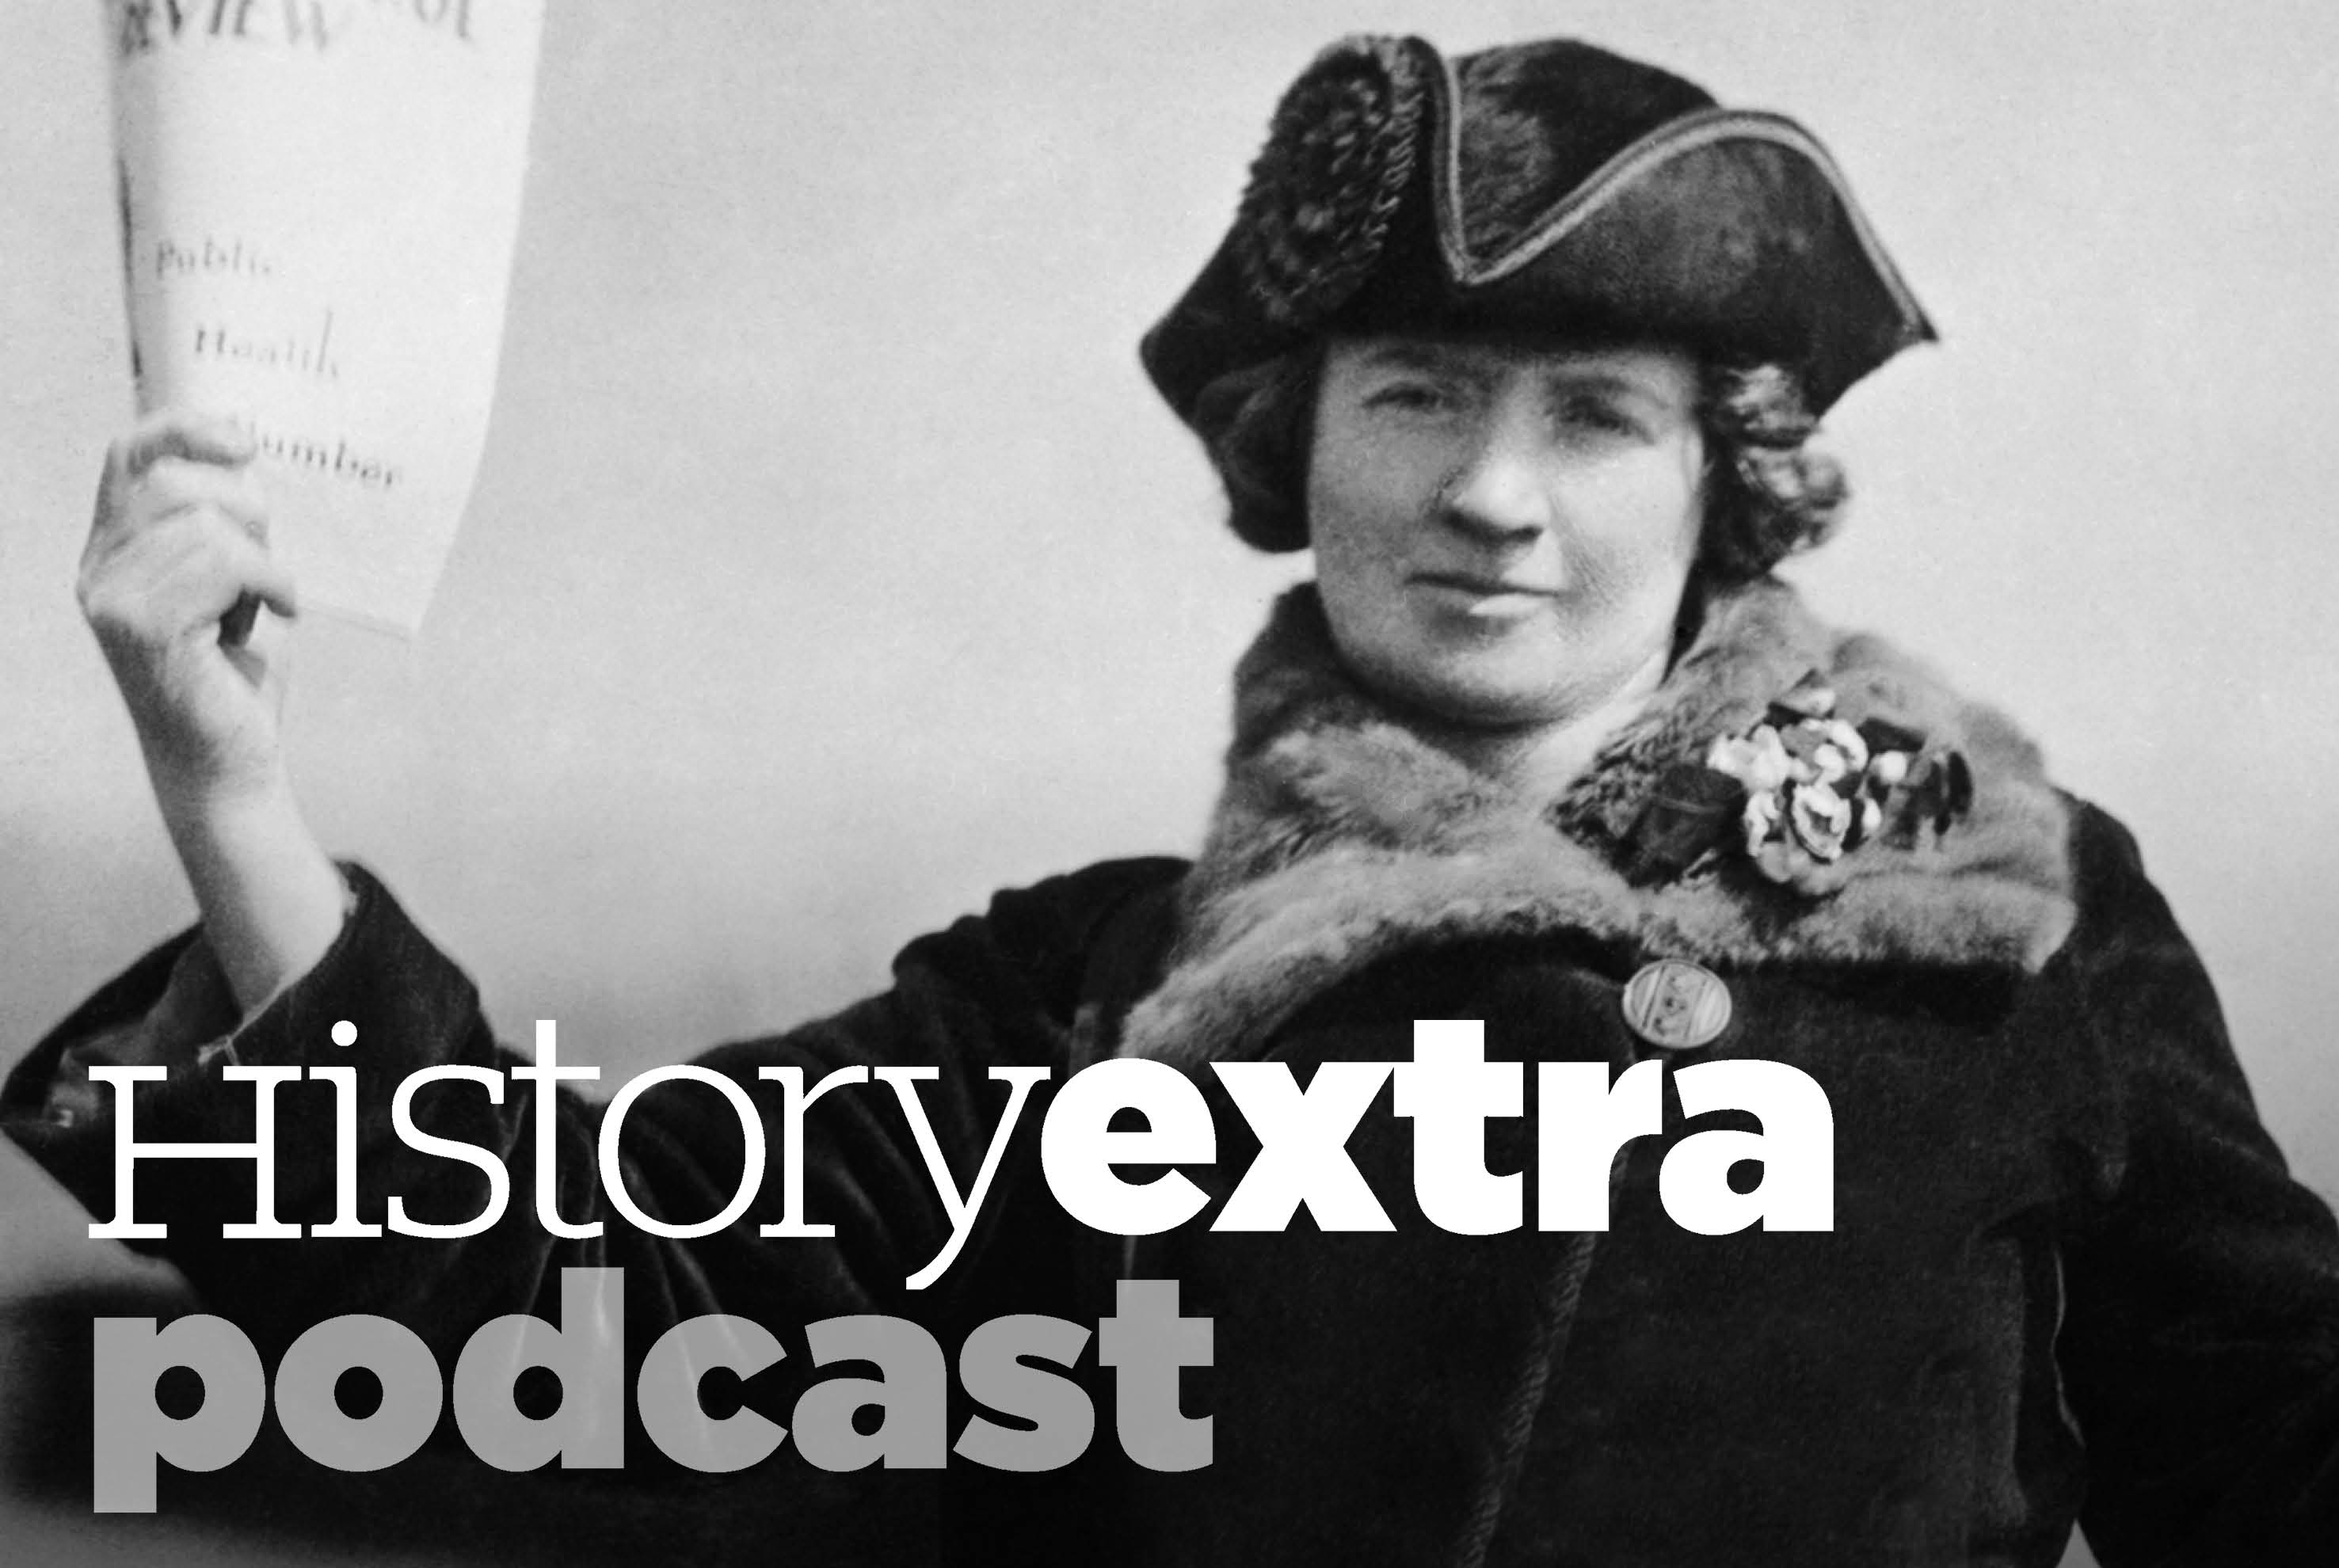 Podcast: Were the suffragettes terrorists?